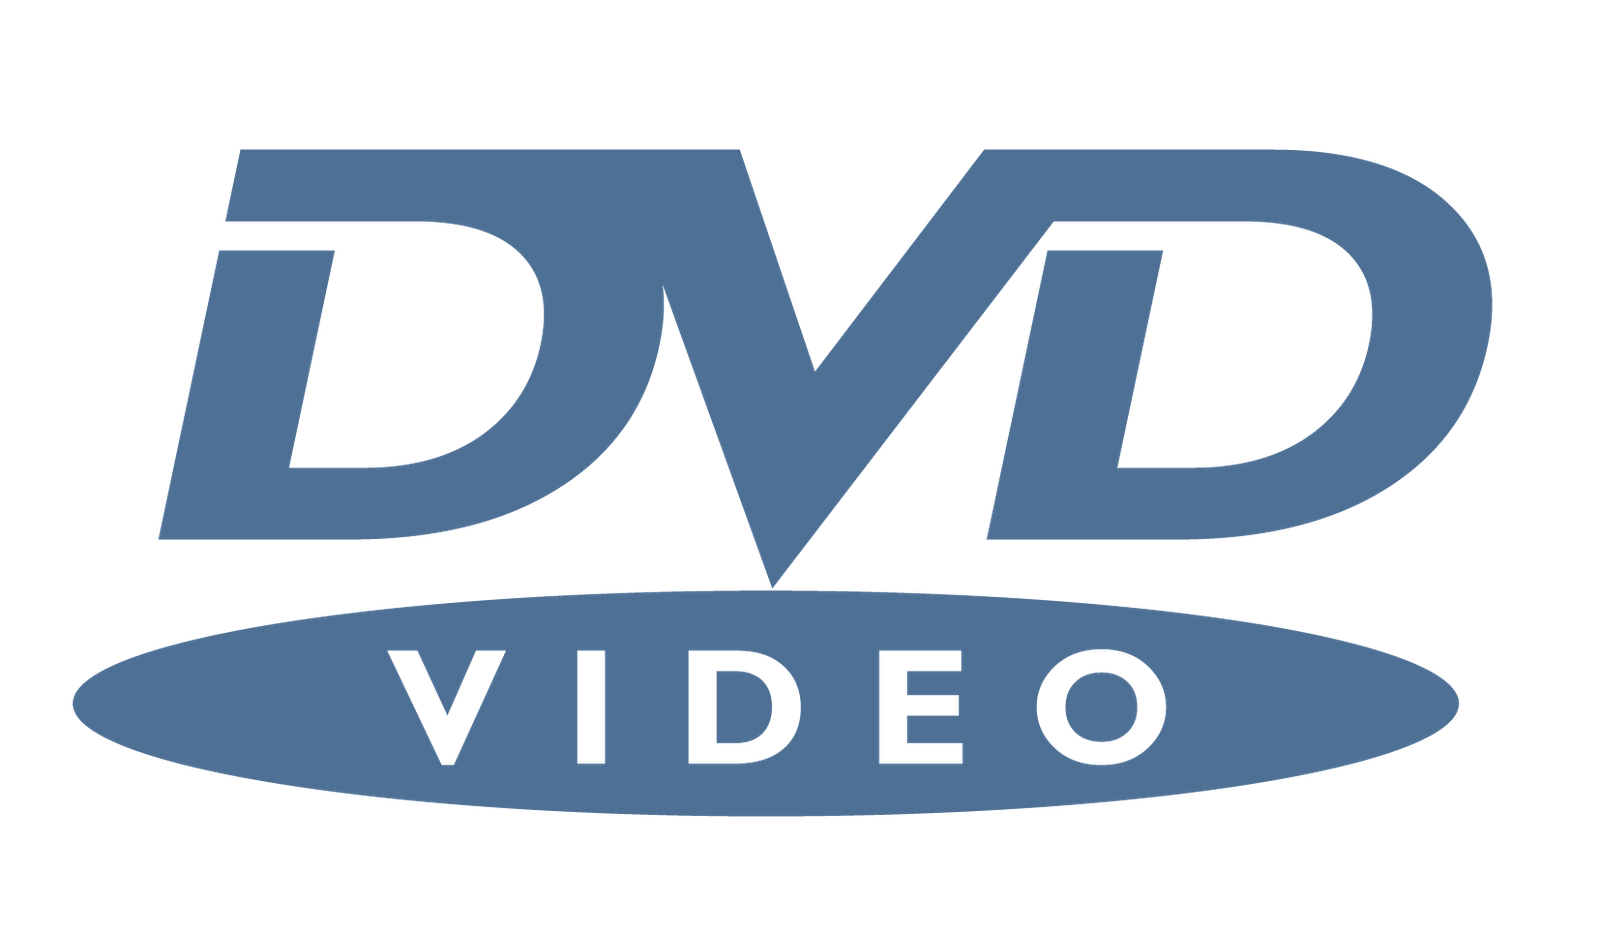 dvd logo transparent png pictures free icons and png backgrounds rh freeiconspng com pc dvd rom logo png pc dvd rom logo png